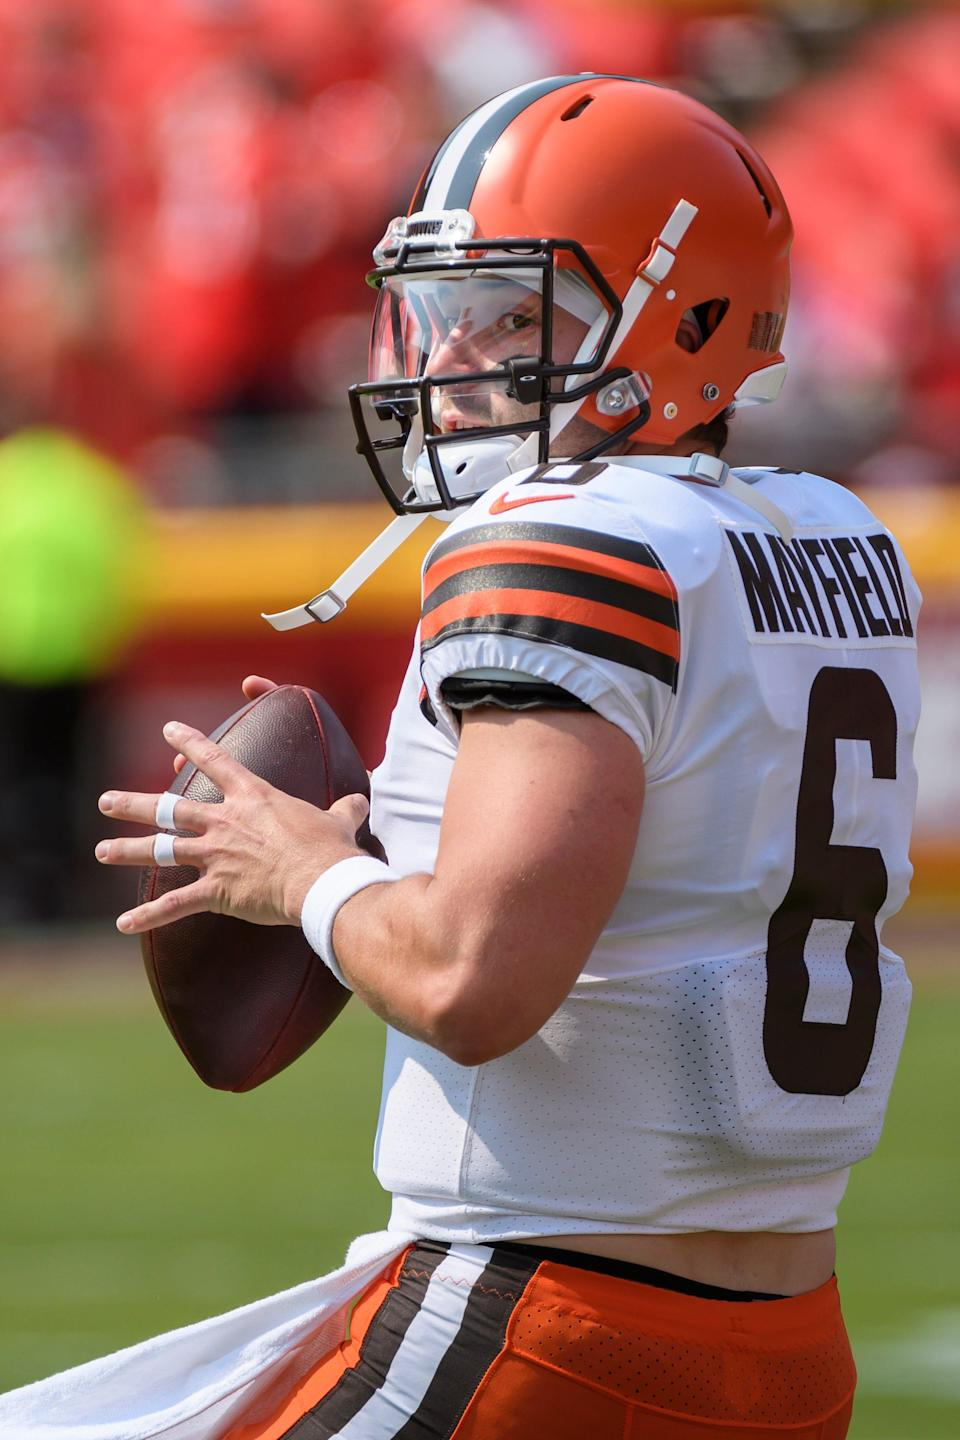 Cleveland Browns quarterback Baker Mayfield during pre-game warmups before an NFL football game against the Kansas City Chiefs, Sunday, Sept.12, 2021 in Kansas City, Mo. (AP Photo/Reed Hoffmann)